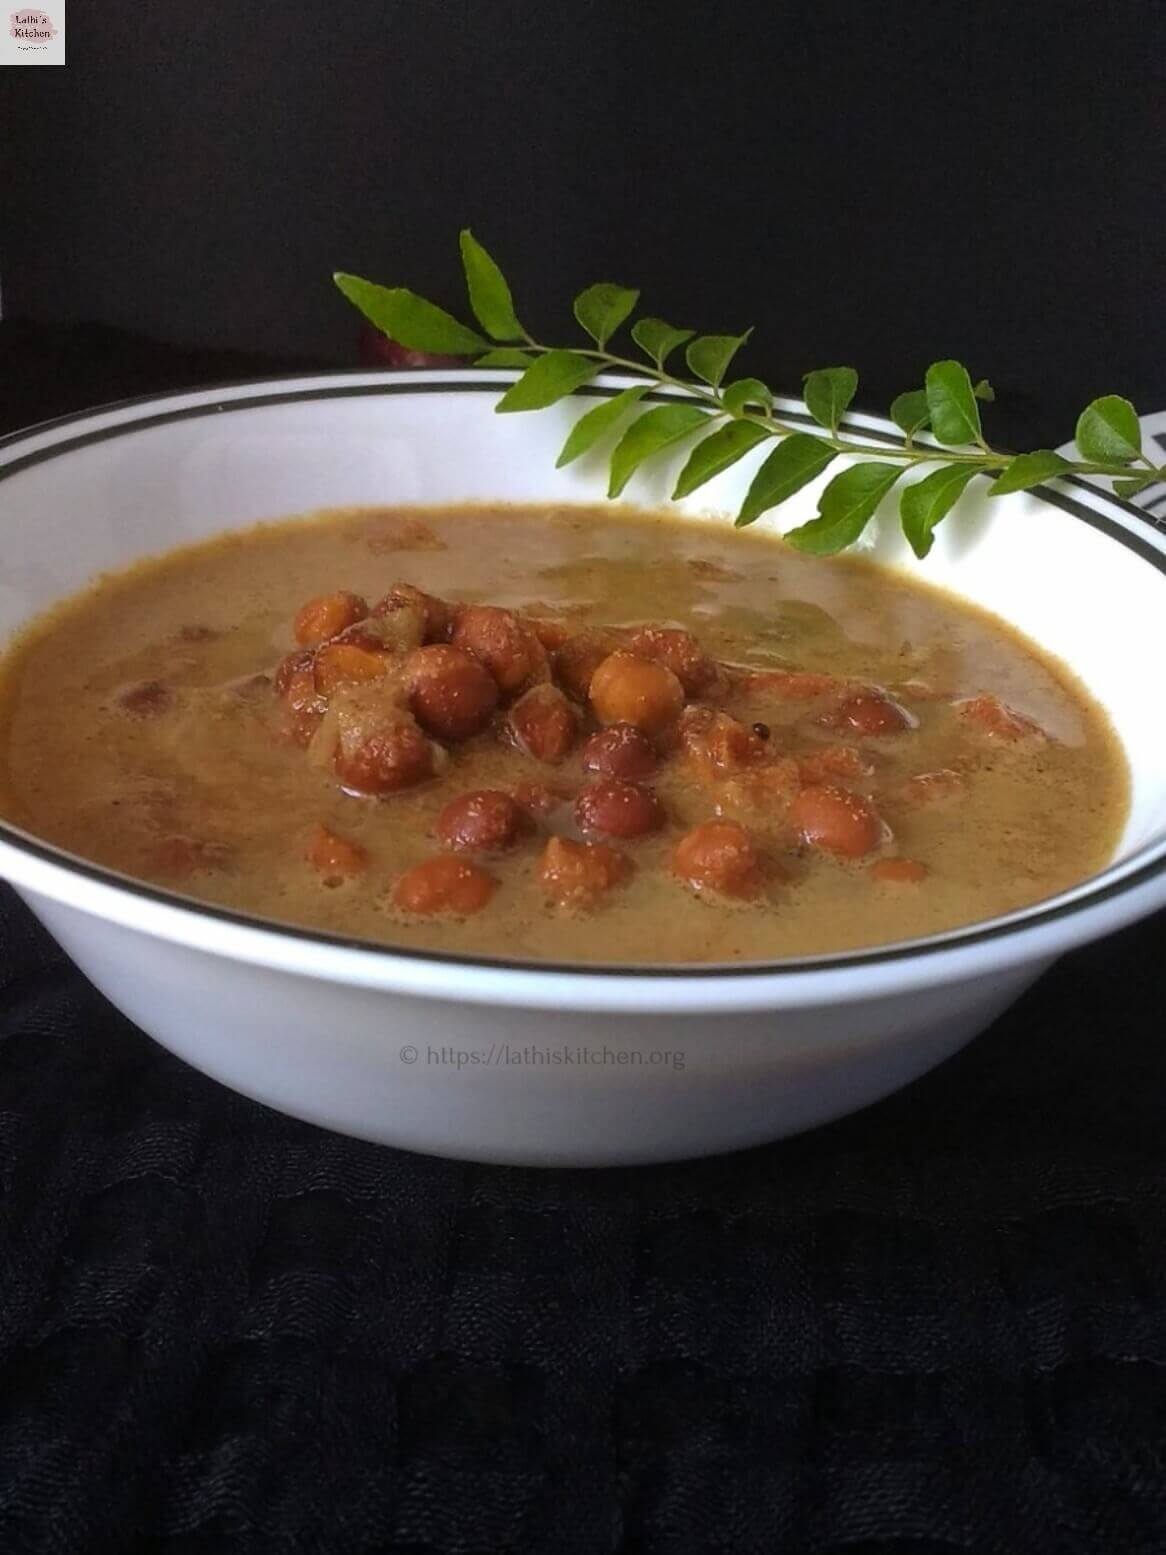 kadala curry, Kerala kadala curry, Kadal curry in pressure cooker,Chickpeas curry with coconut